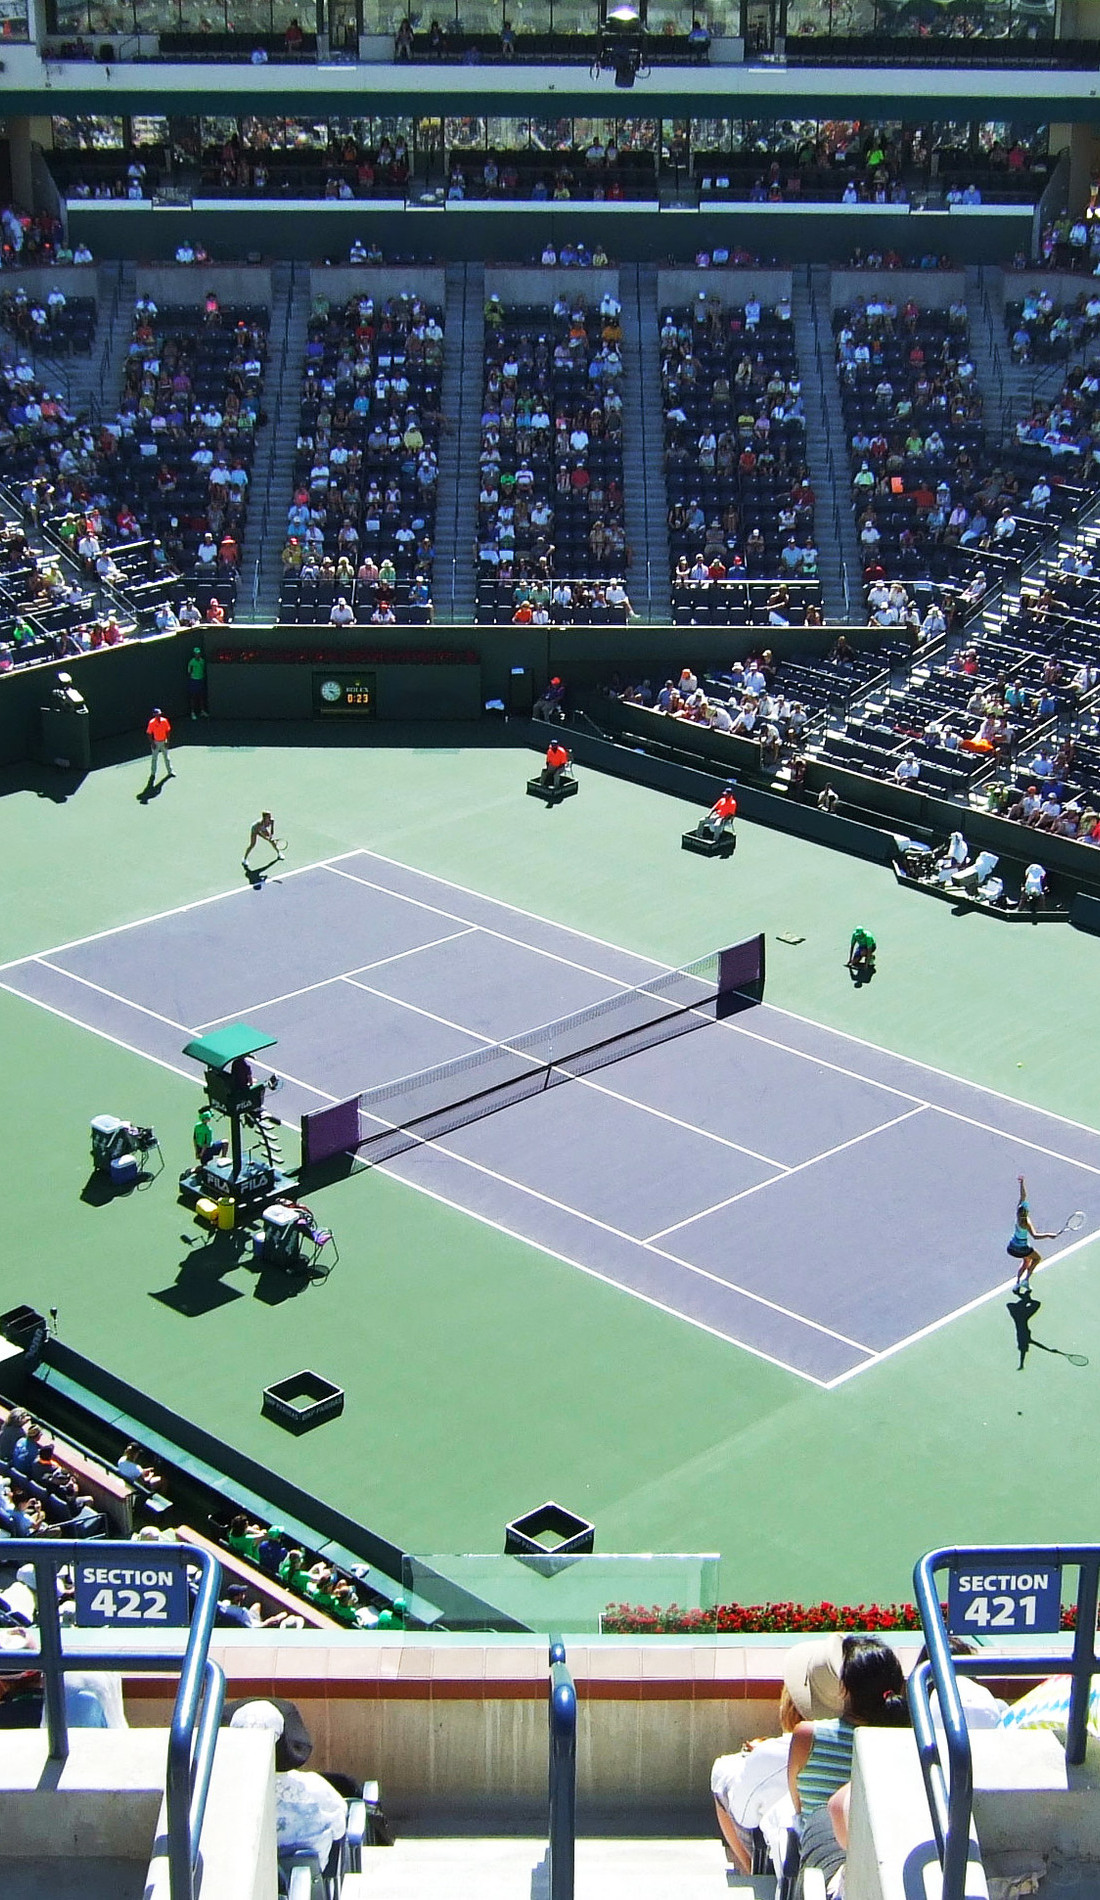 A BNP Paribas Open live event